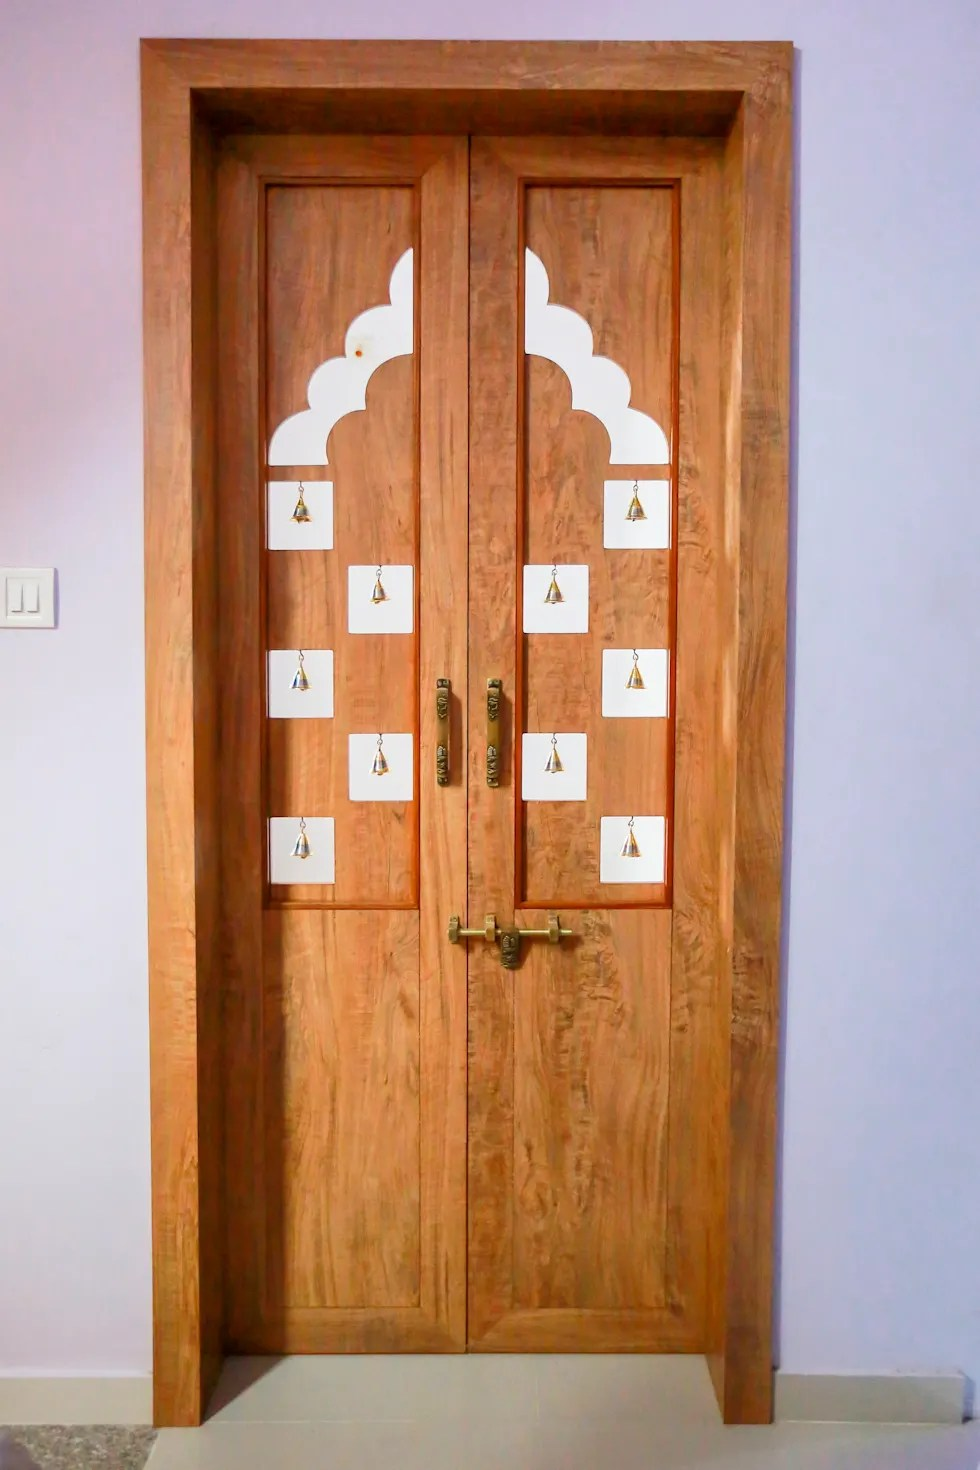 Pooja Door Windows By Zeal Arch Designs Homify